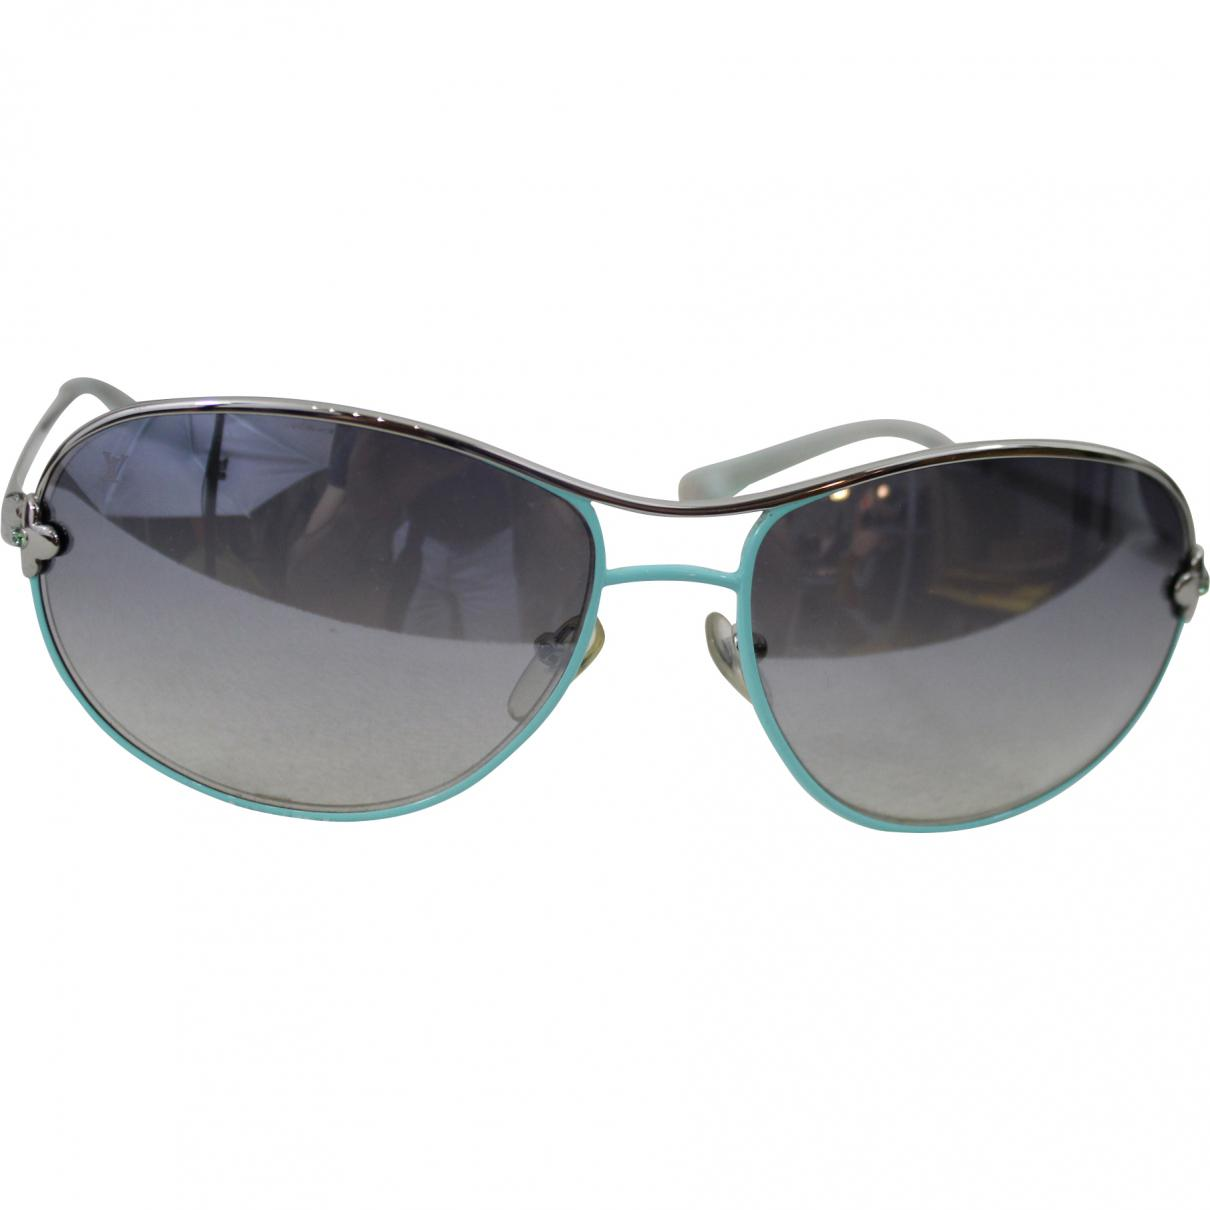 28d04fd77ef5 Lyst - Louis Vuitton Pre-owned Sunglasses in Blue